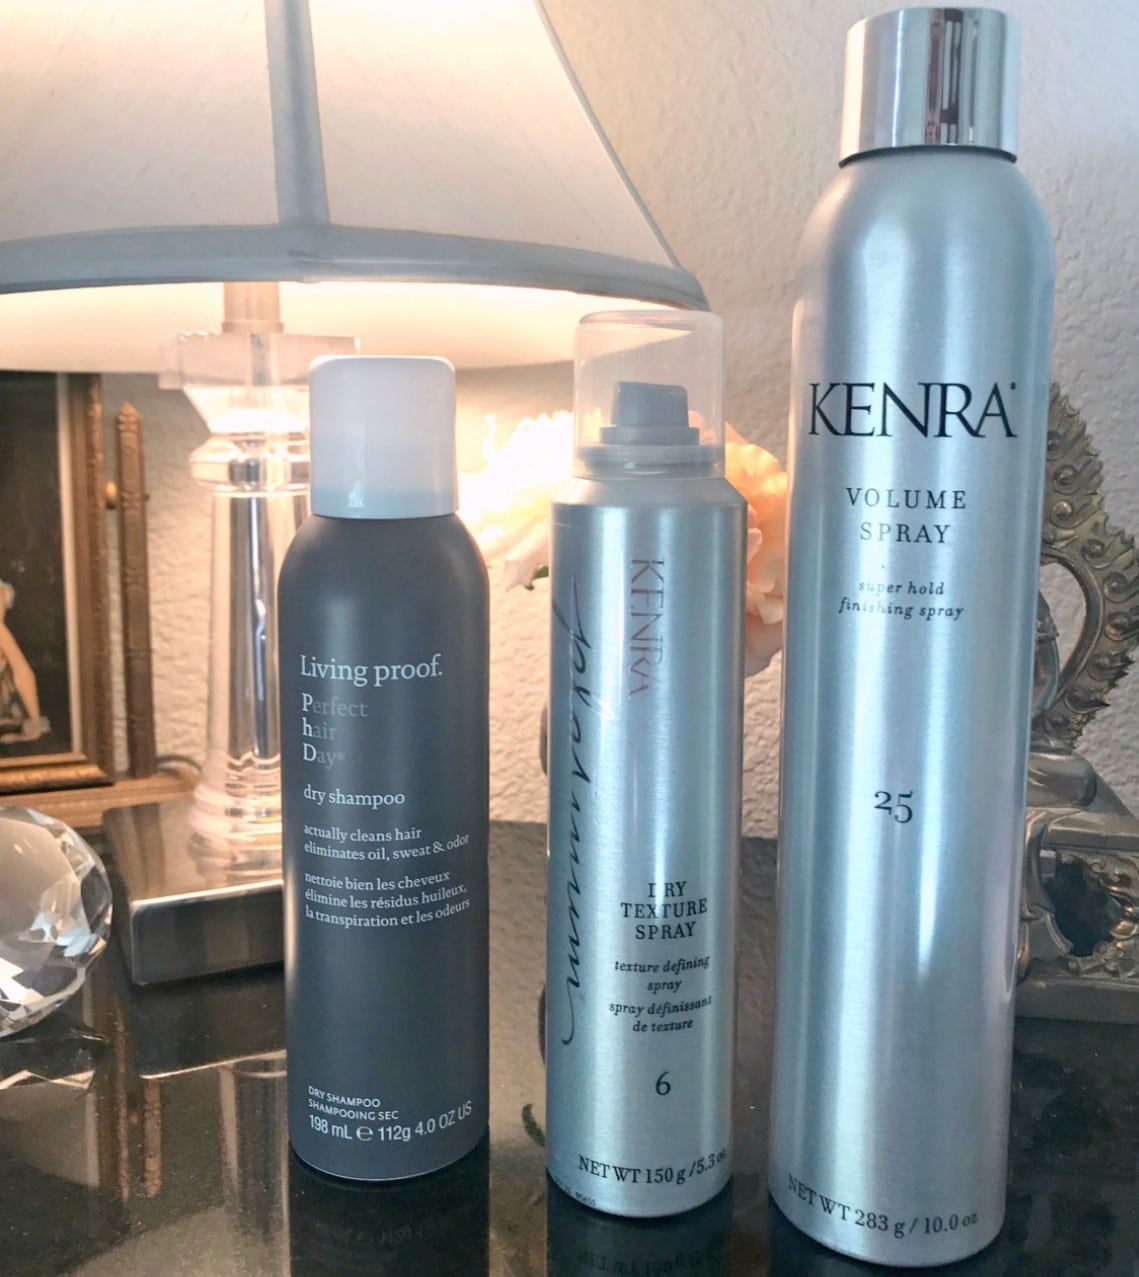 kenra hair care products on A Well Styled Life